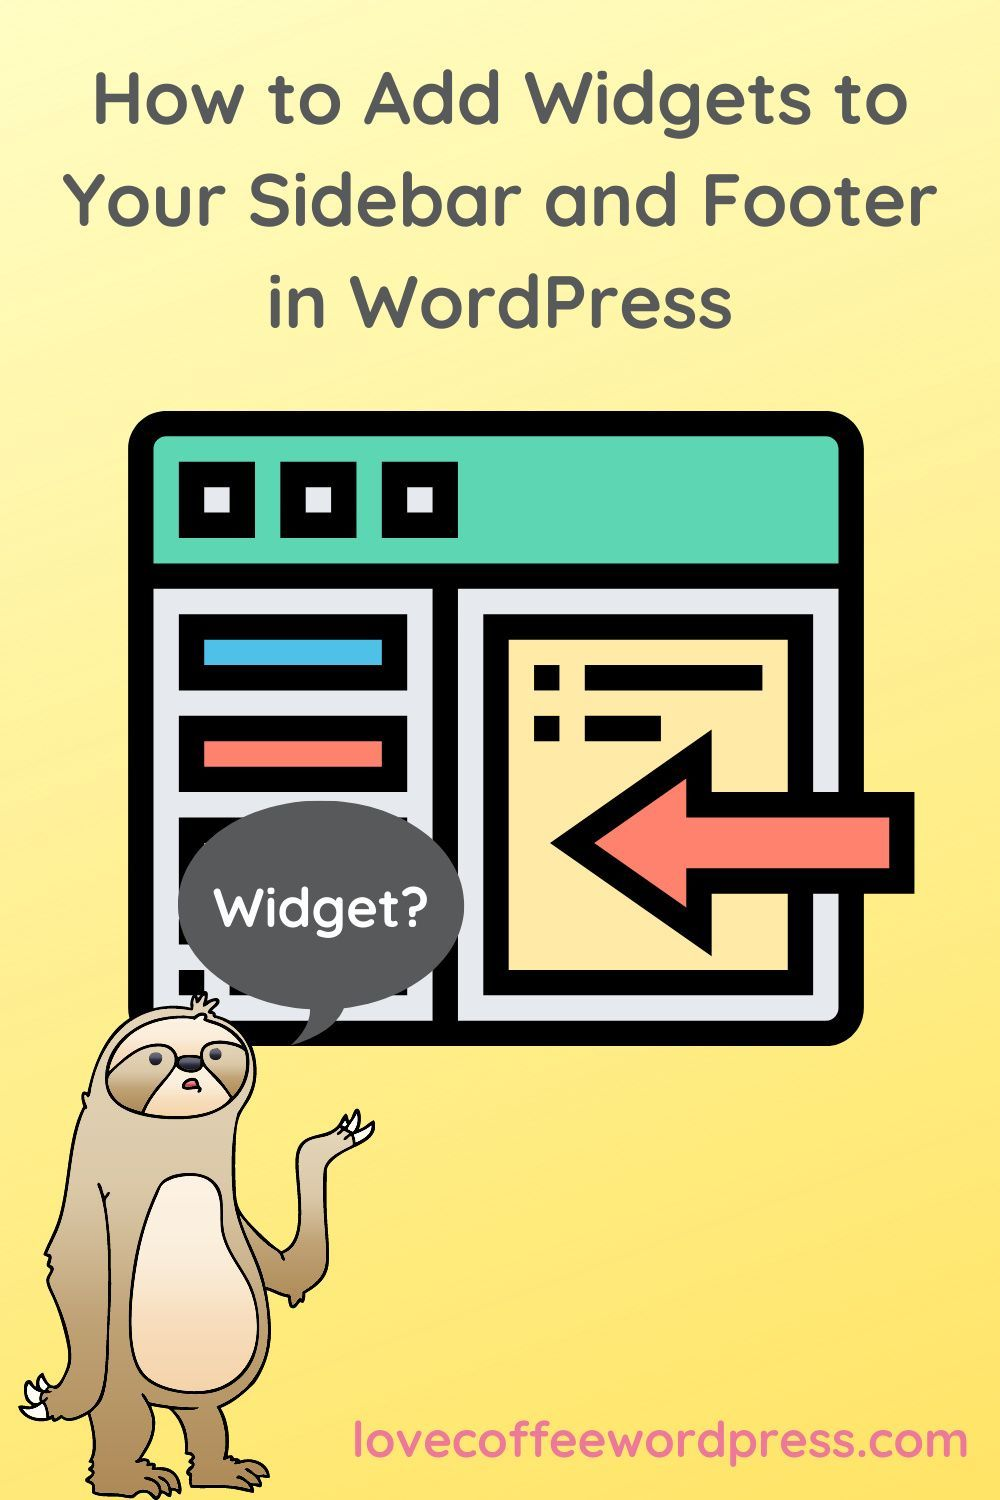 Adding Widgets to Your Sidebar and Footer in WordPress in